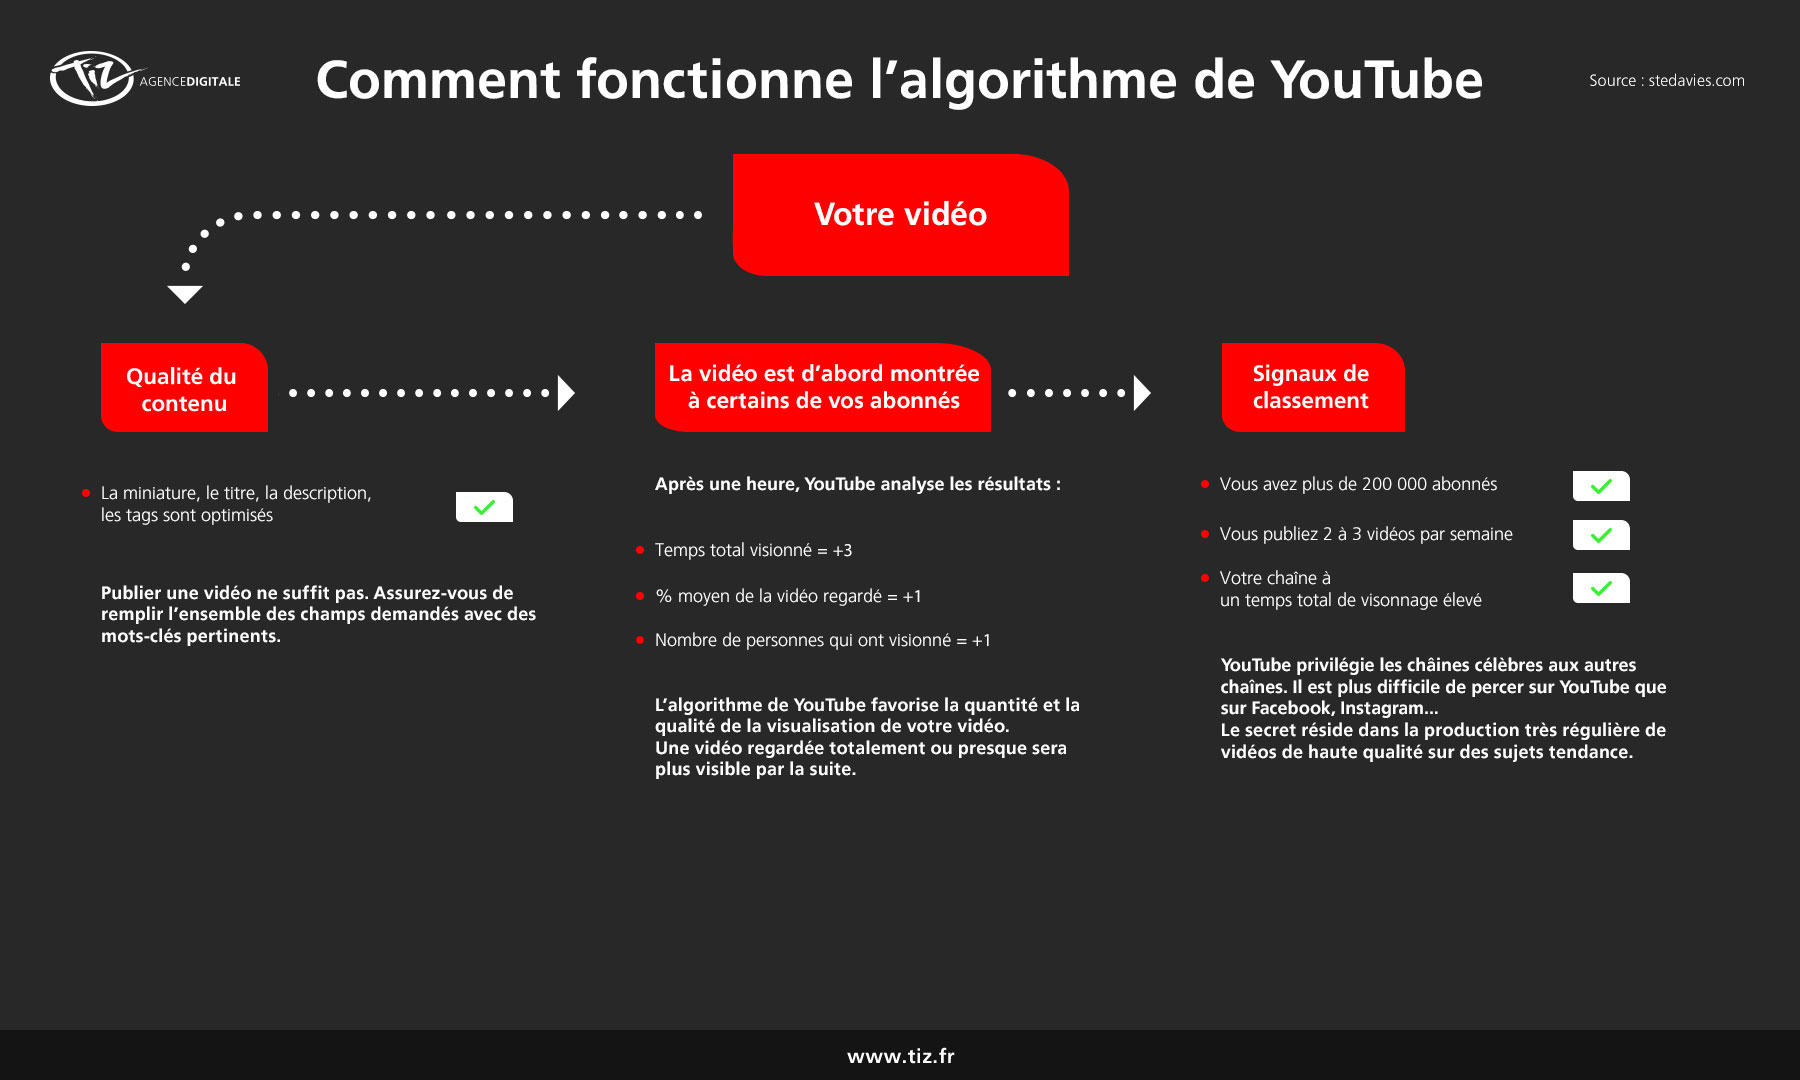 Comment fonctionnent les algorithmes de Facebook, Linkedin, Instagram ou Youtube ?